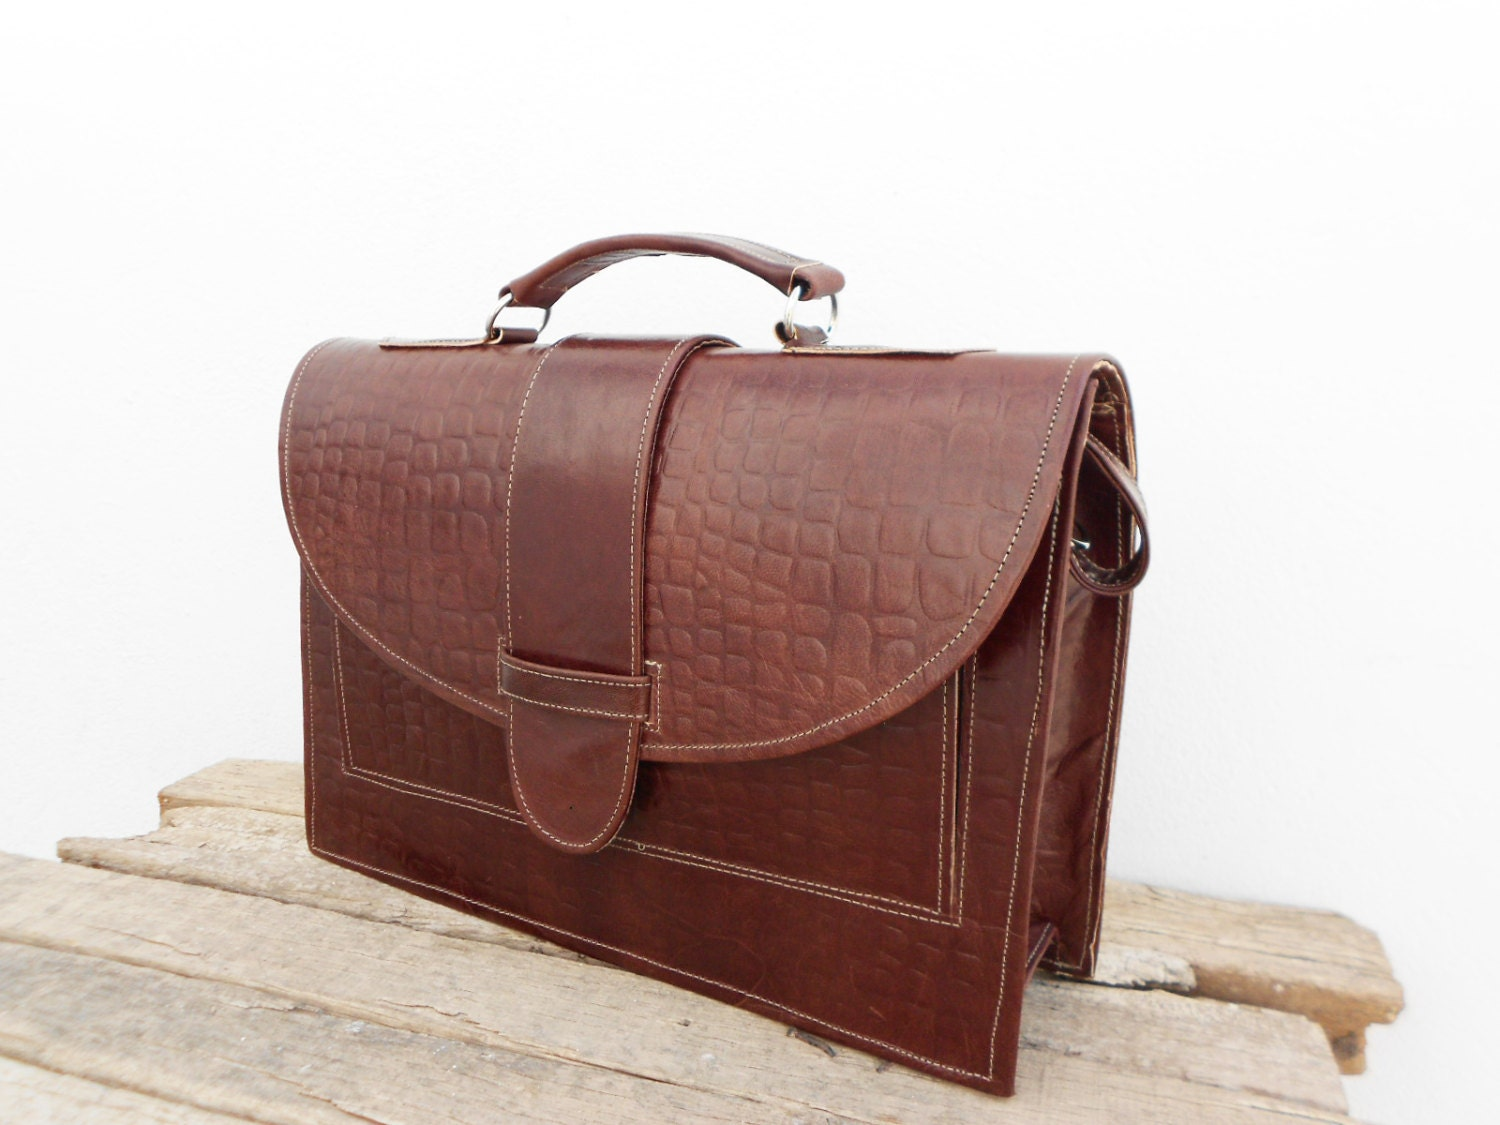 Innovative Amazon.com Brown Leather Messenger Bag For Men Women Vintage Laptop Gifts Ideas Clothing